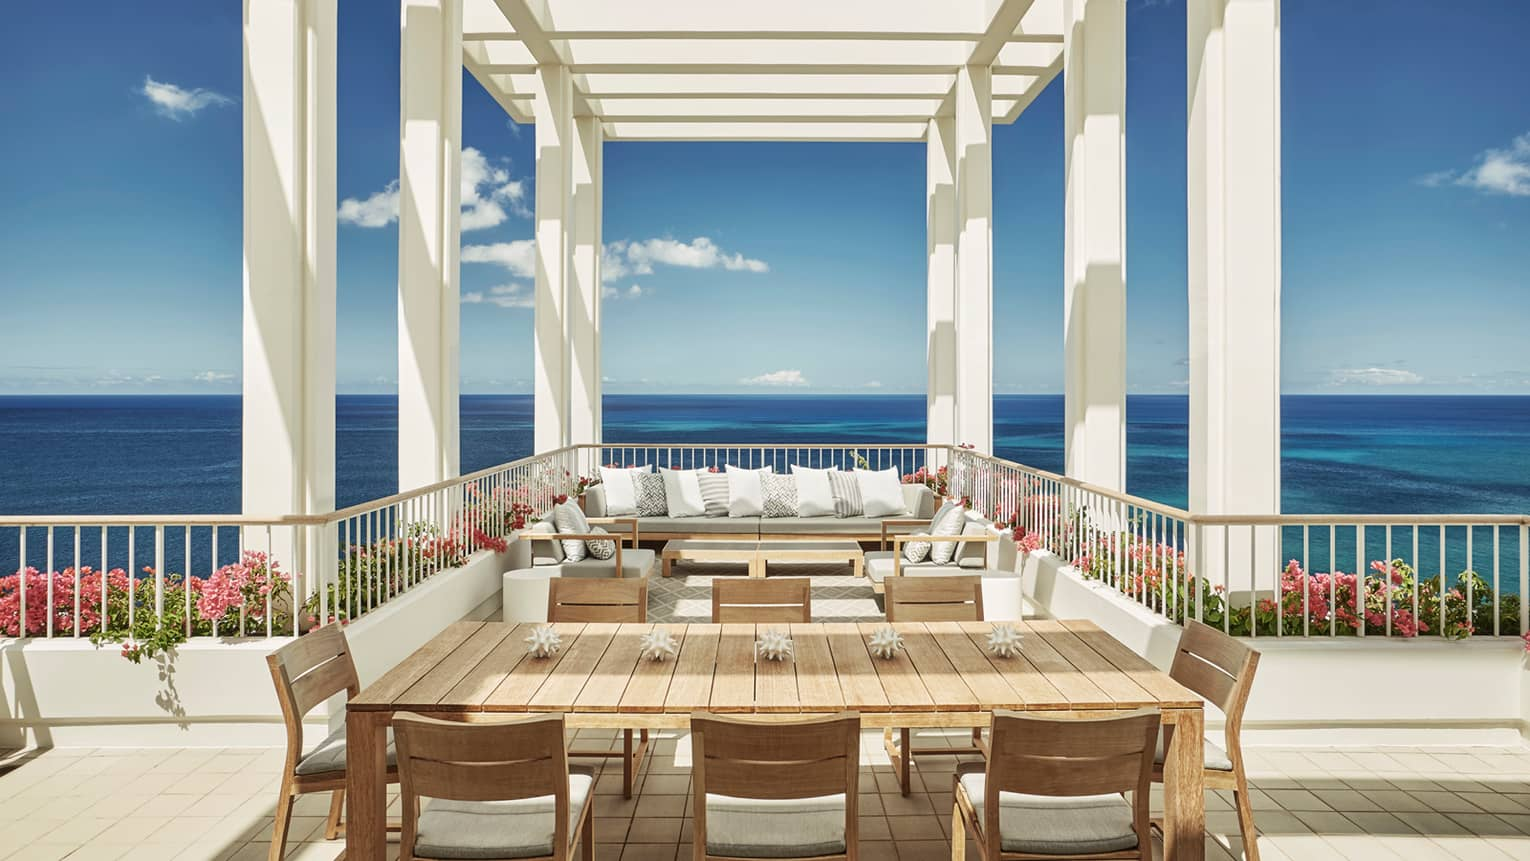 Penthouse Suite large patio dining table, seating area under white pergola, blue sky